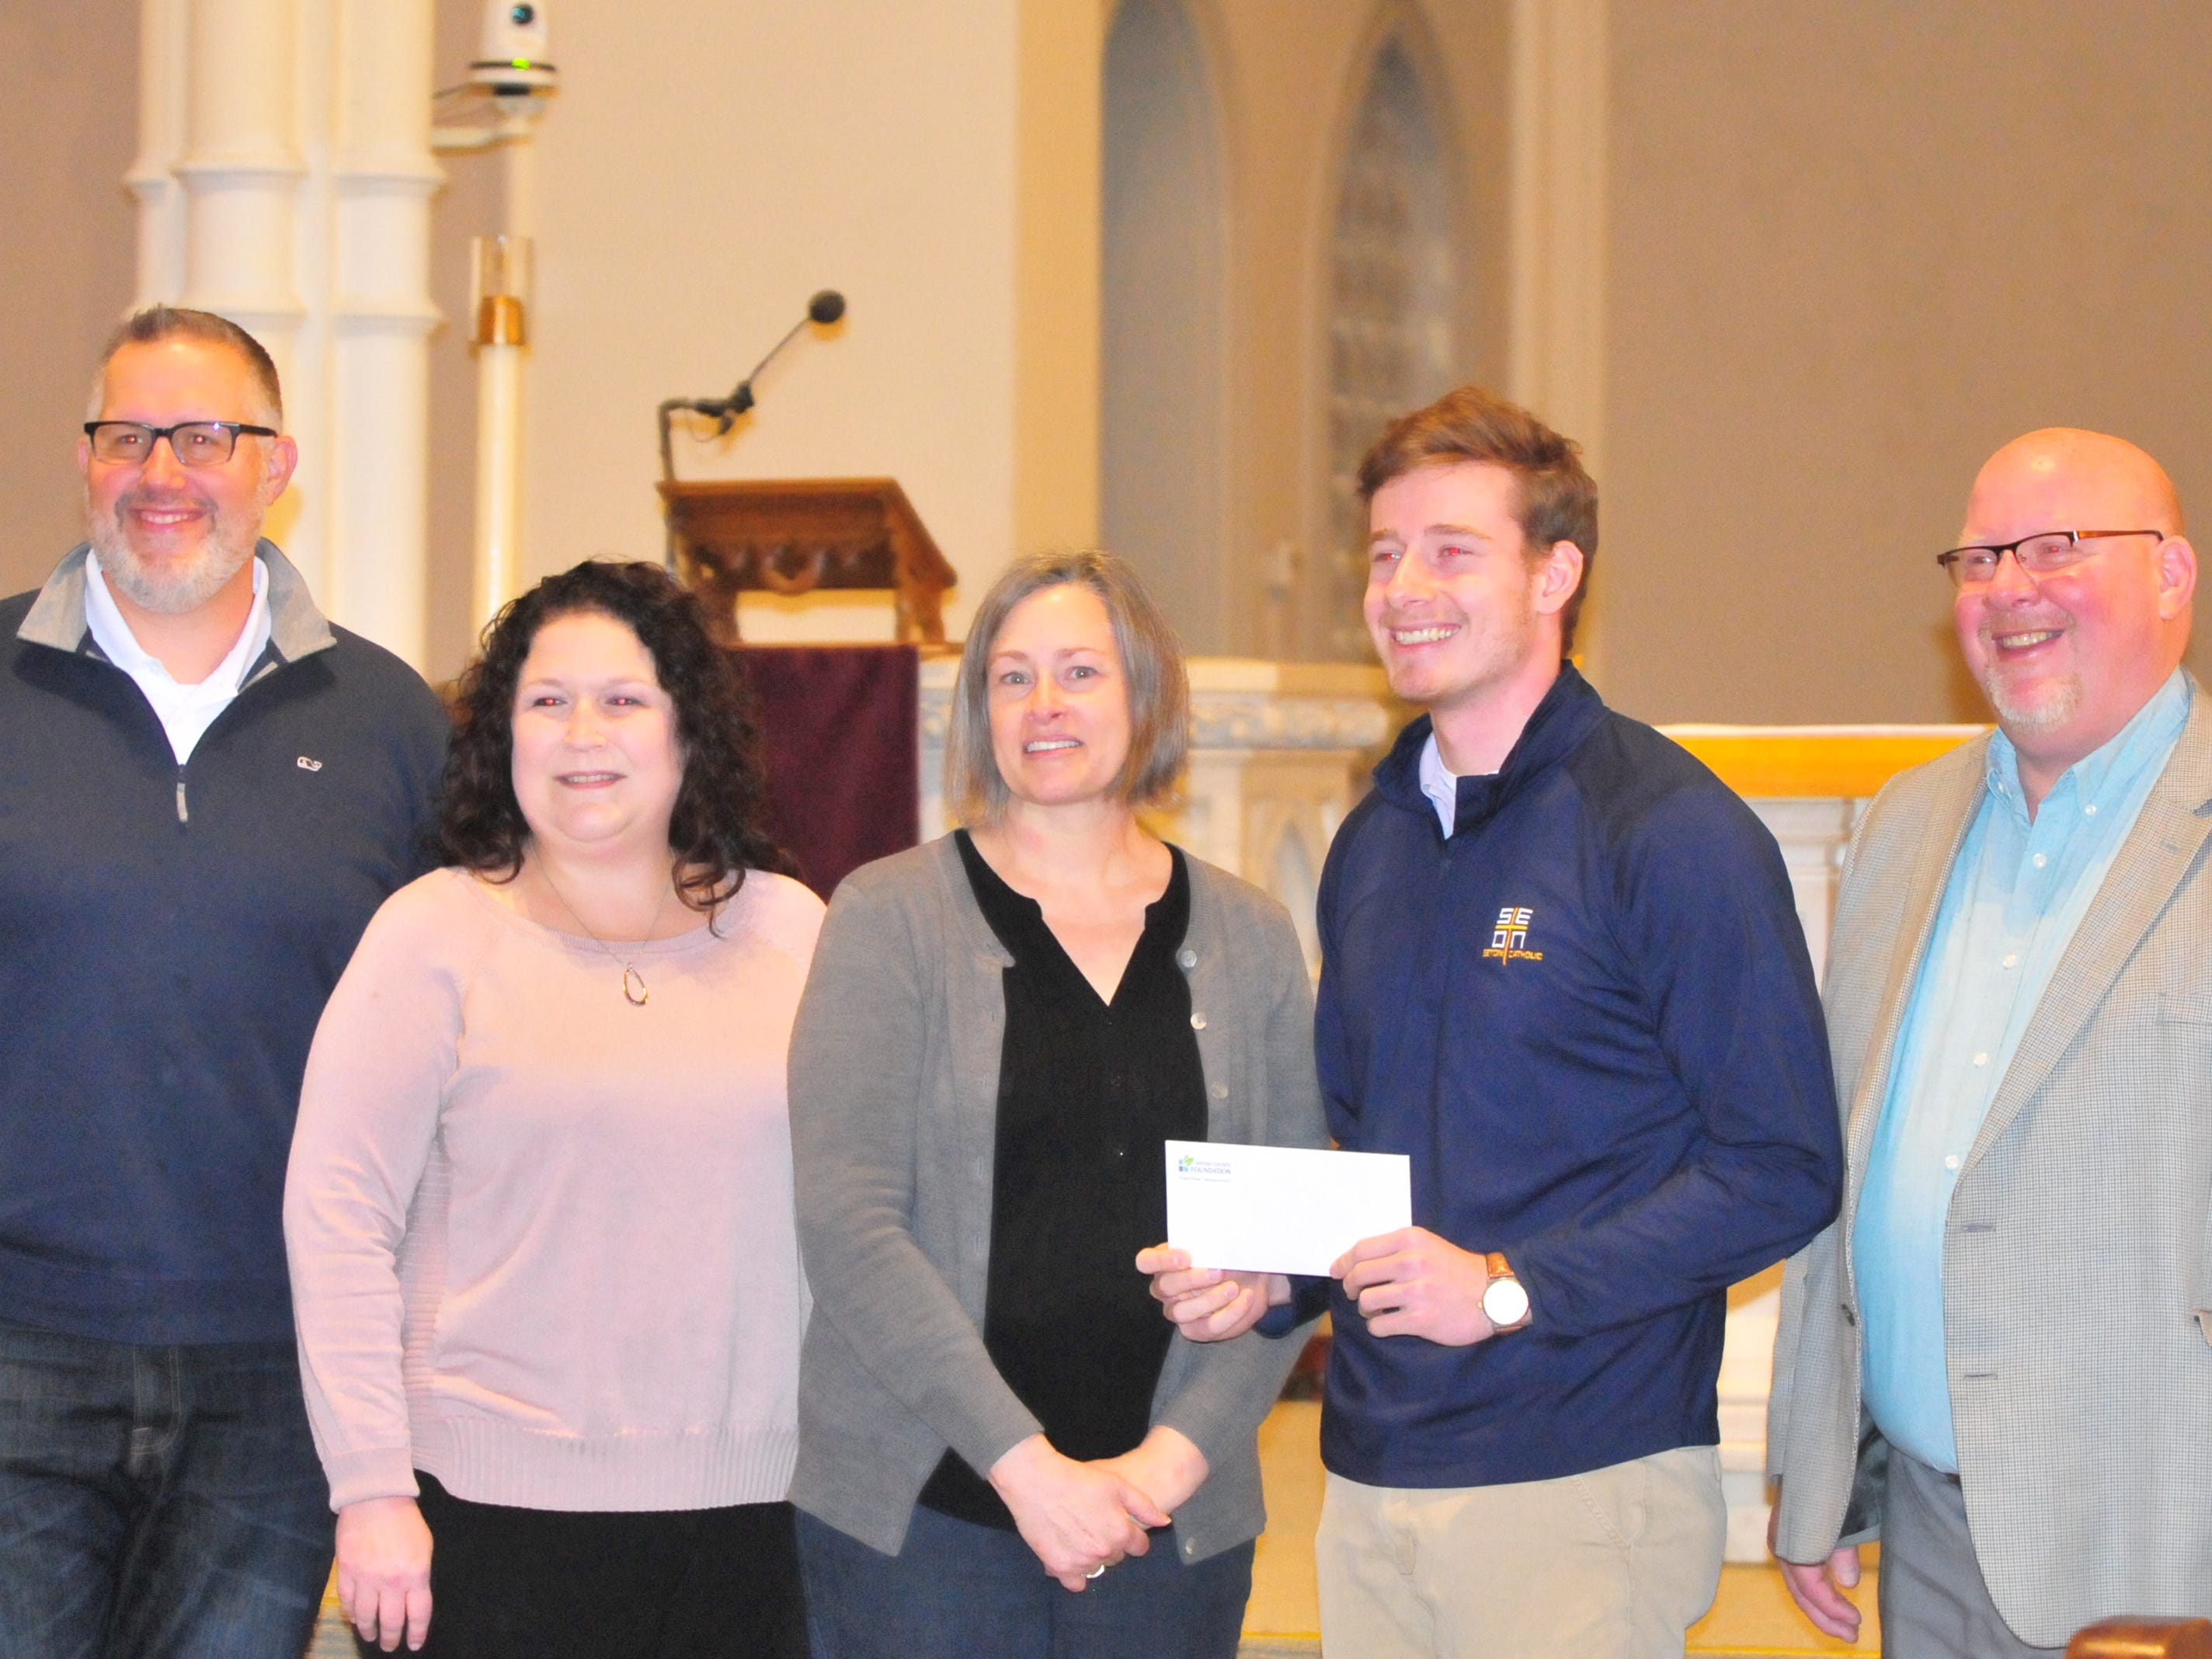 Seton Catholic senior Joseph Lahmann, fourth from left, with principal John Markward, Wayne County Foundation Program Officer Lisa Bates, mother Margaret Rees Lahman, and father Patrick Lahmann, after finding out Joseph won the Lilly Endowment Community Scholarship after morning mass at St. Andrew's Catholic Church in Richmond Tuesday, Dec. 11, 2018.